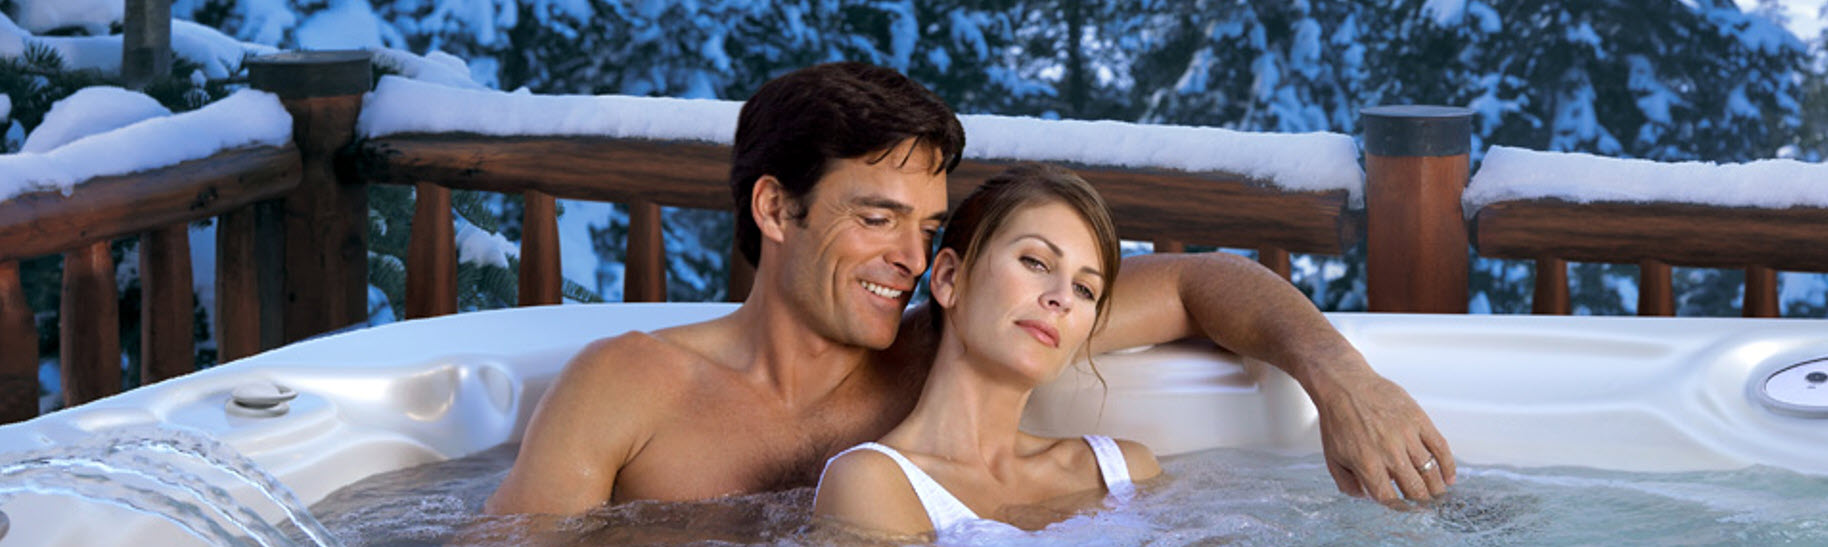 How to Make Supervising Kids on Snow Days Fun, Hot Tubs St. Charles